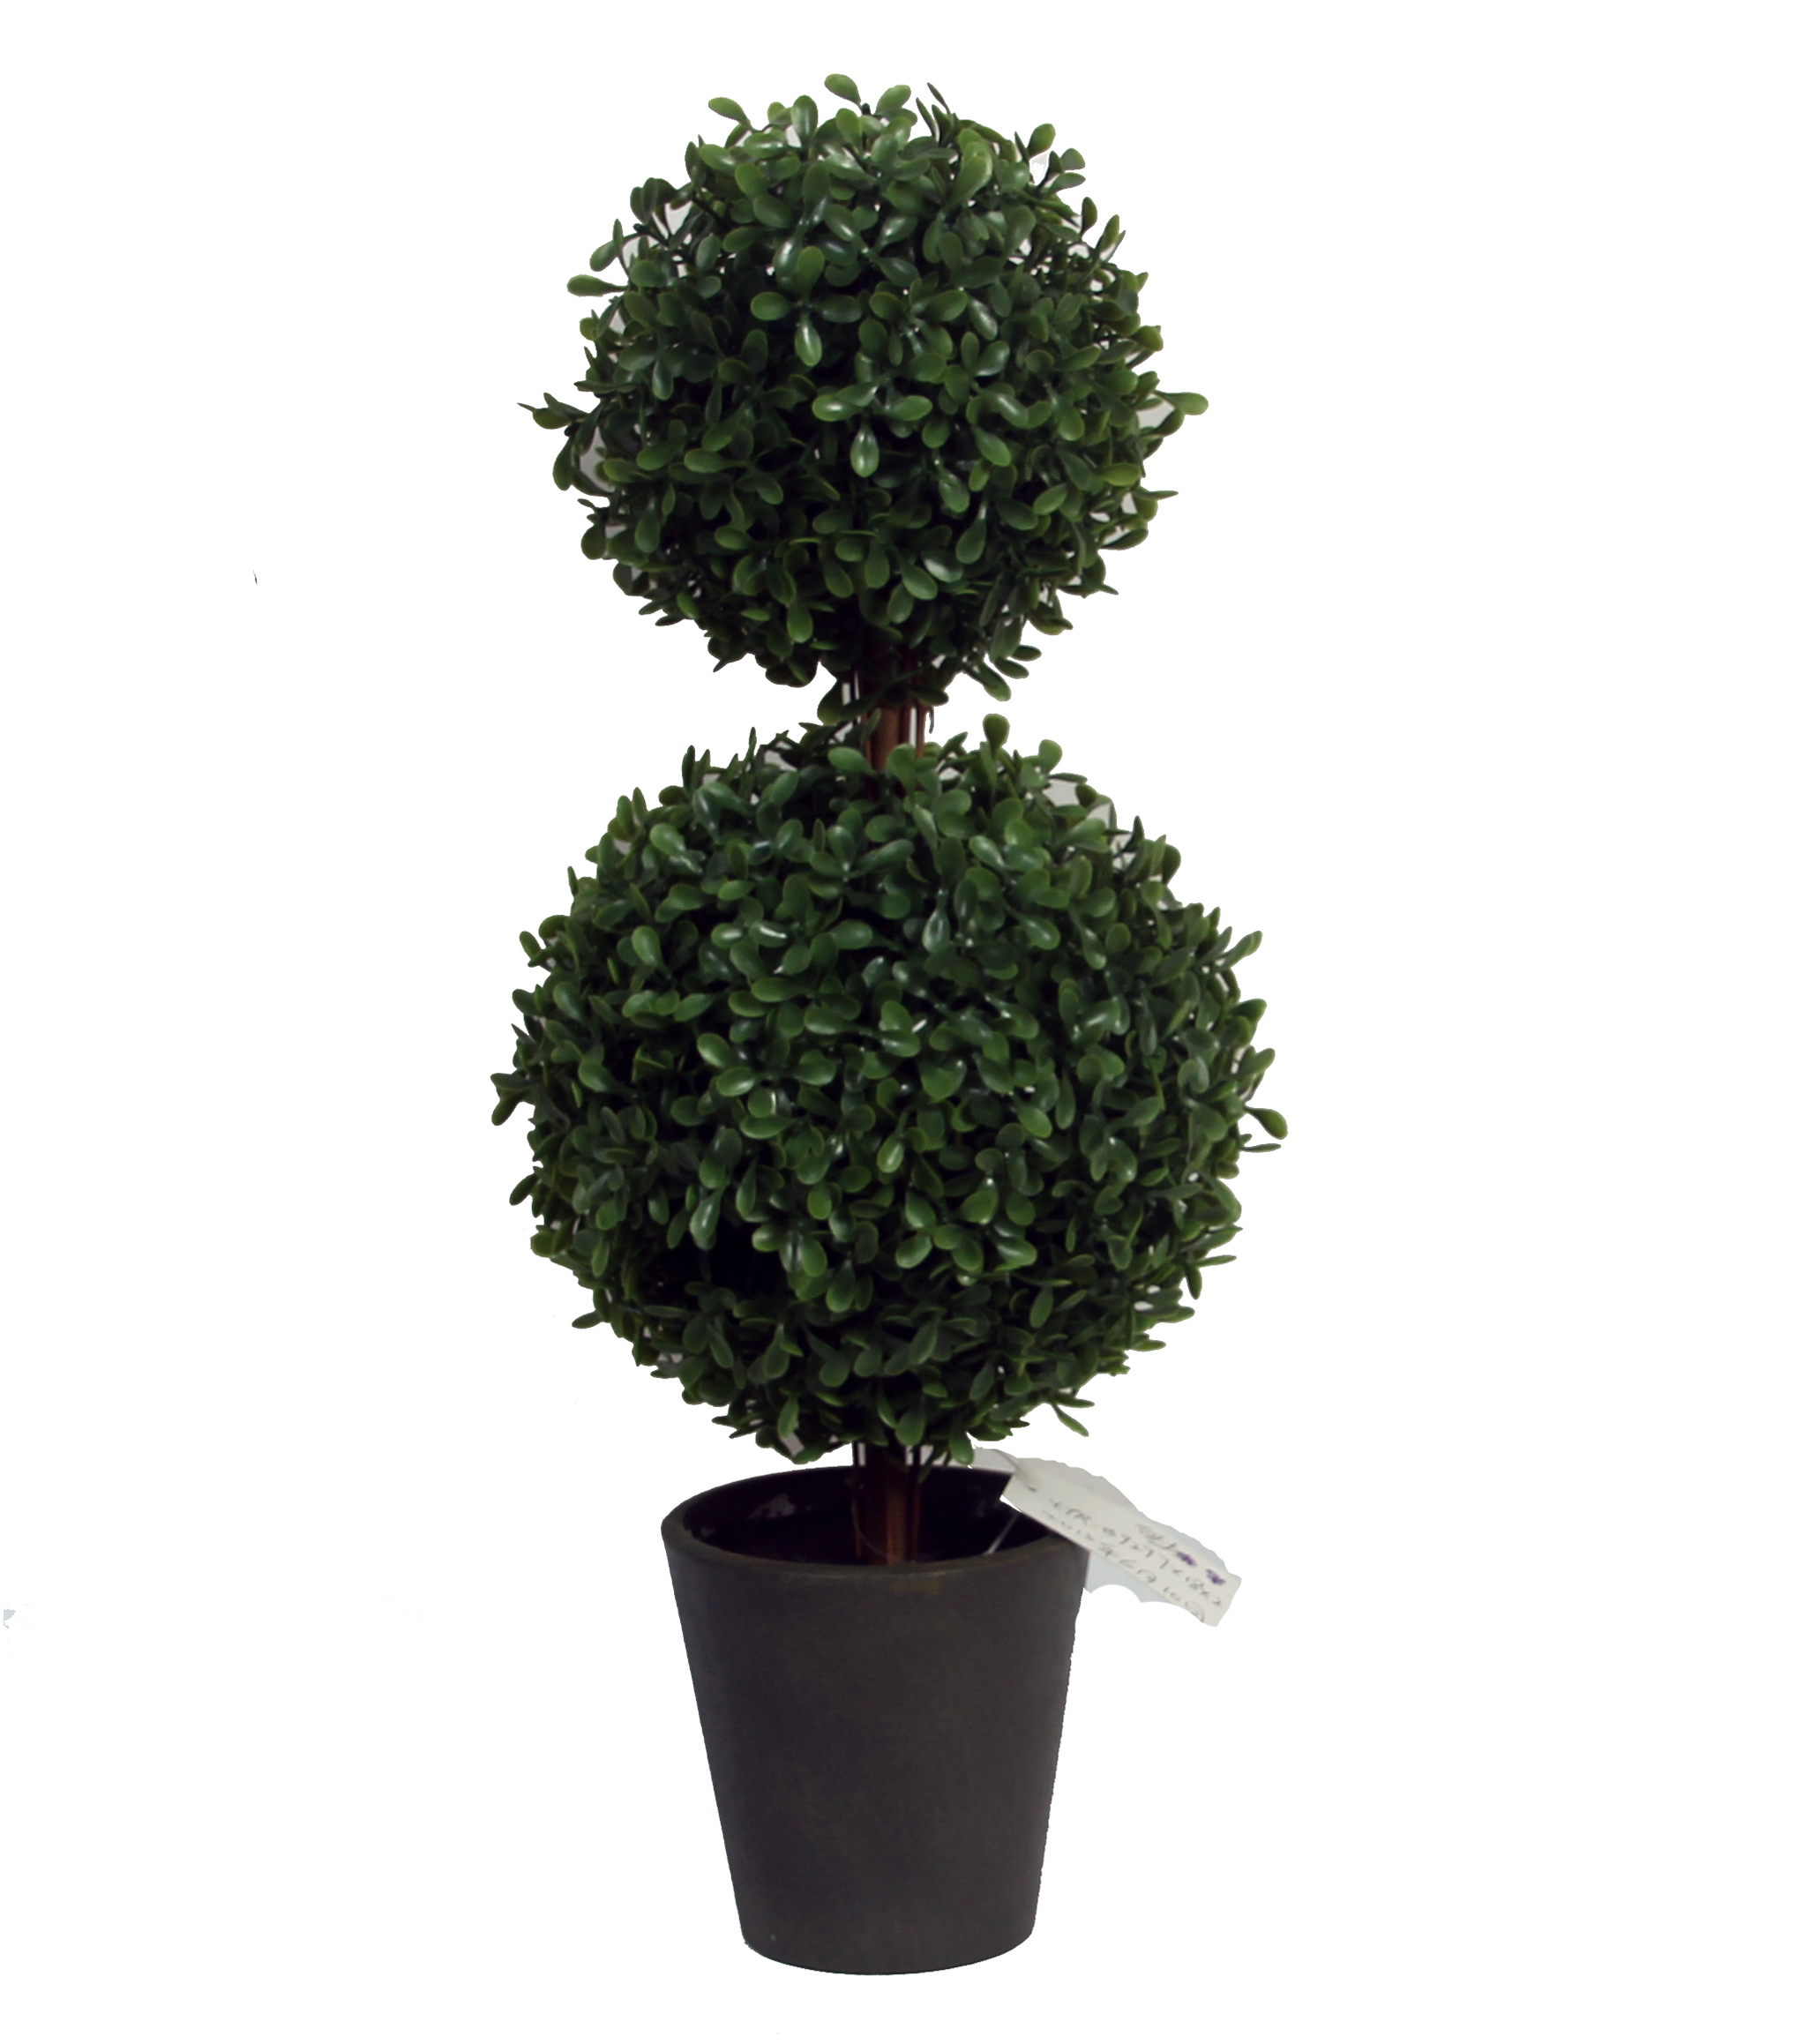 Bloom Room Soft Touch Boxwood Double Ball Topiary-Green | JOANN